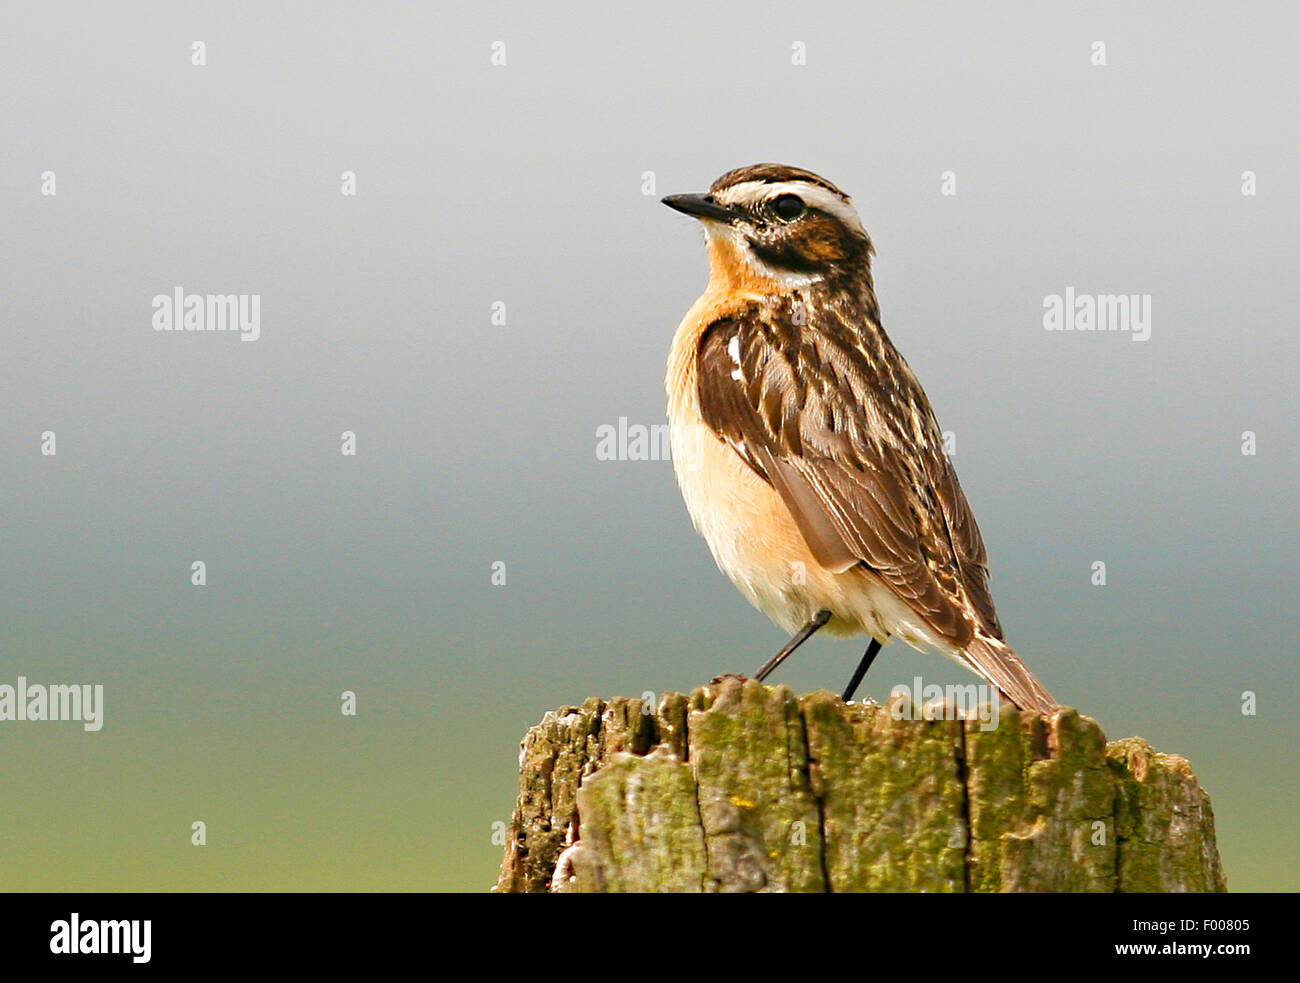 whinchat (Saxicola rubetra), male on its outlook, Germany - Stock Image